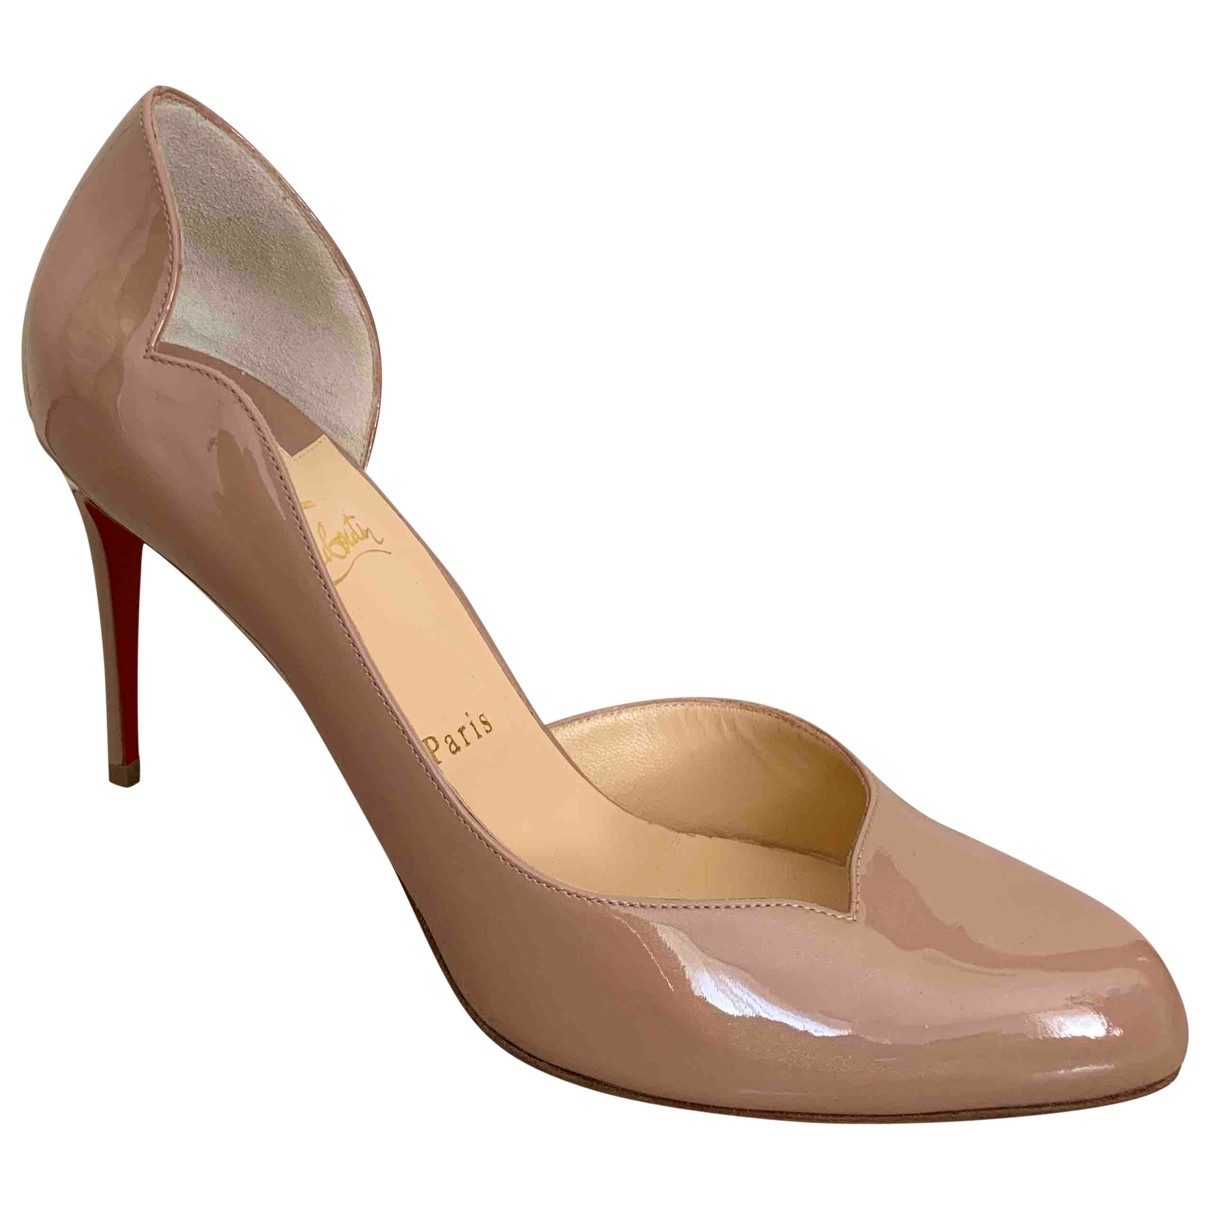 Christian Louboutin \N Beige Patent leather Heels for Women 41 EU